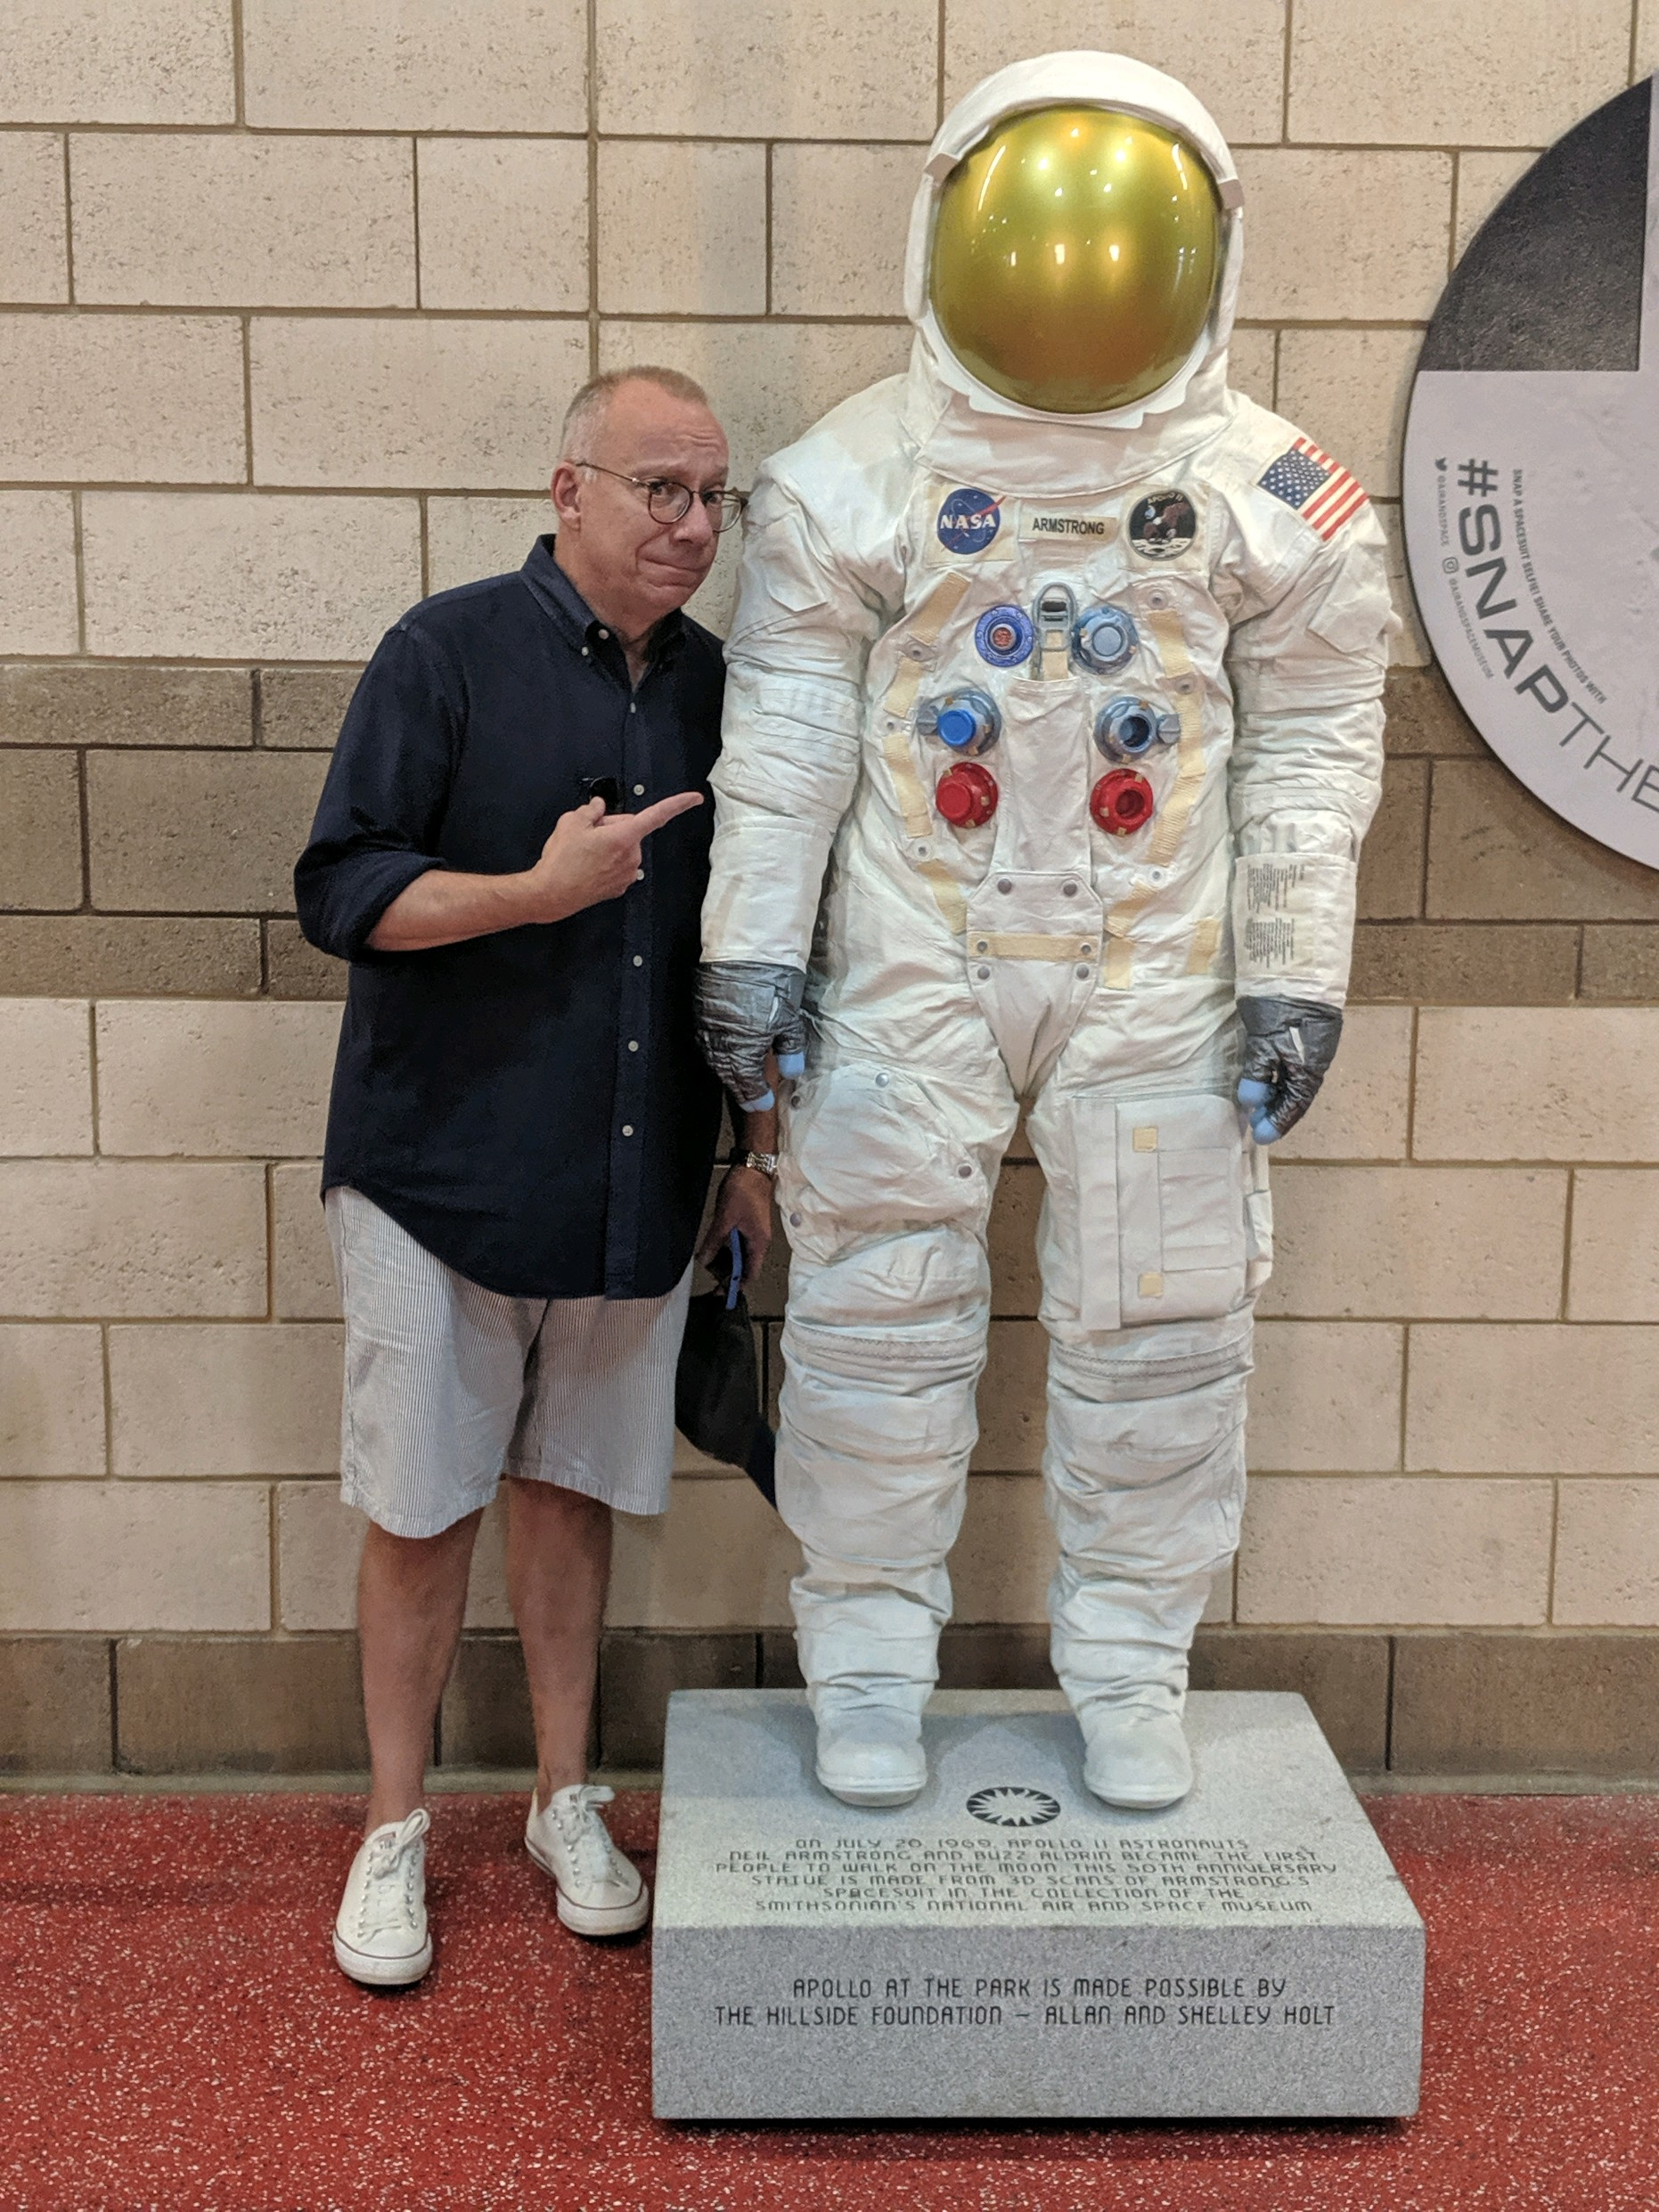 With Neil Armstrong's Apollo XI spacesuit, last weekend in Washington, DC.